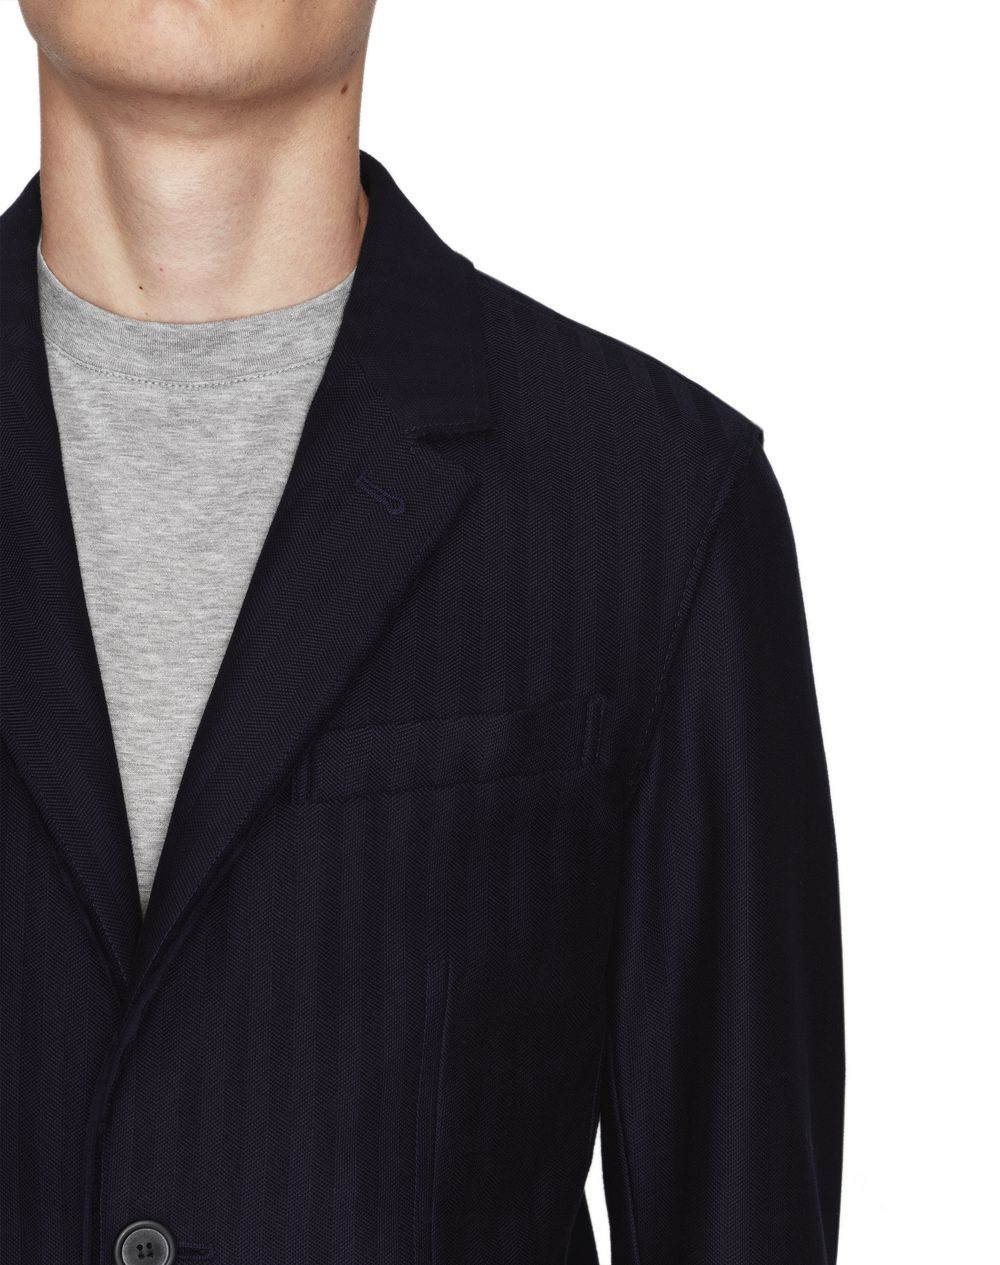 NAVY BLUE DECONSTRUCTED JACKET - Lanvin